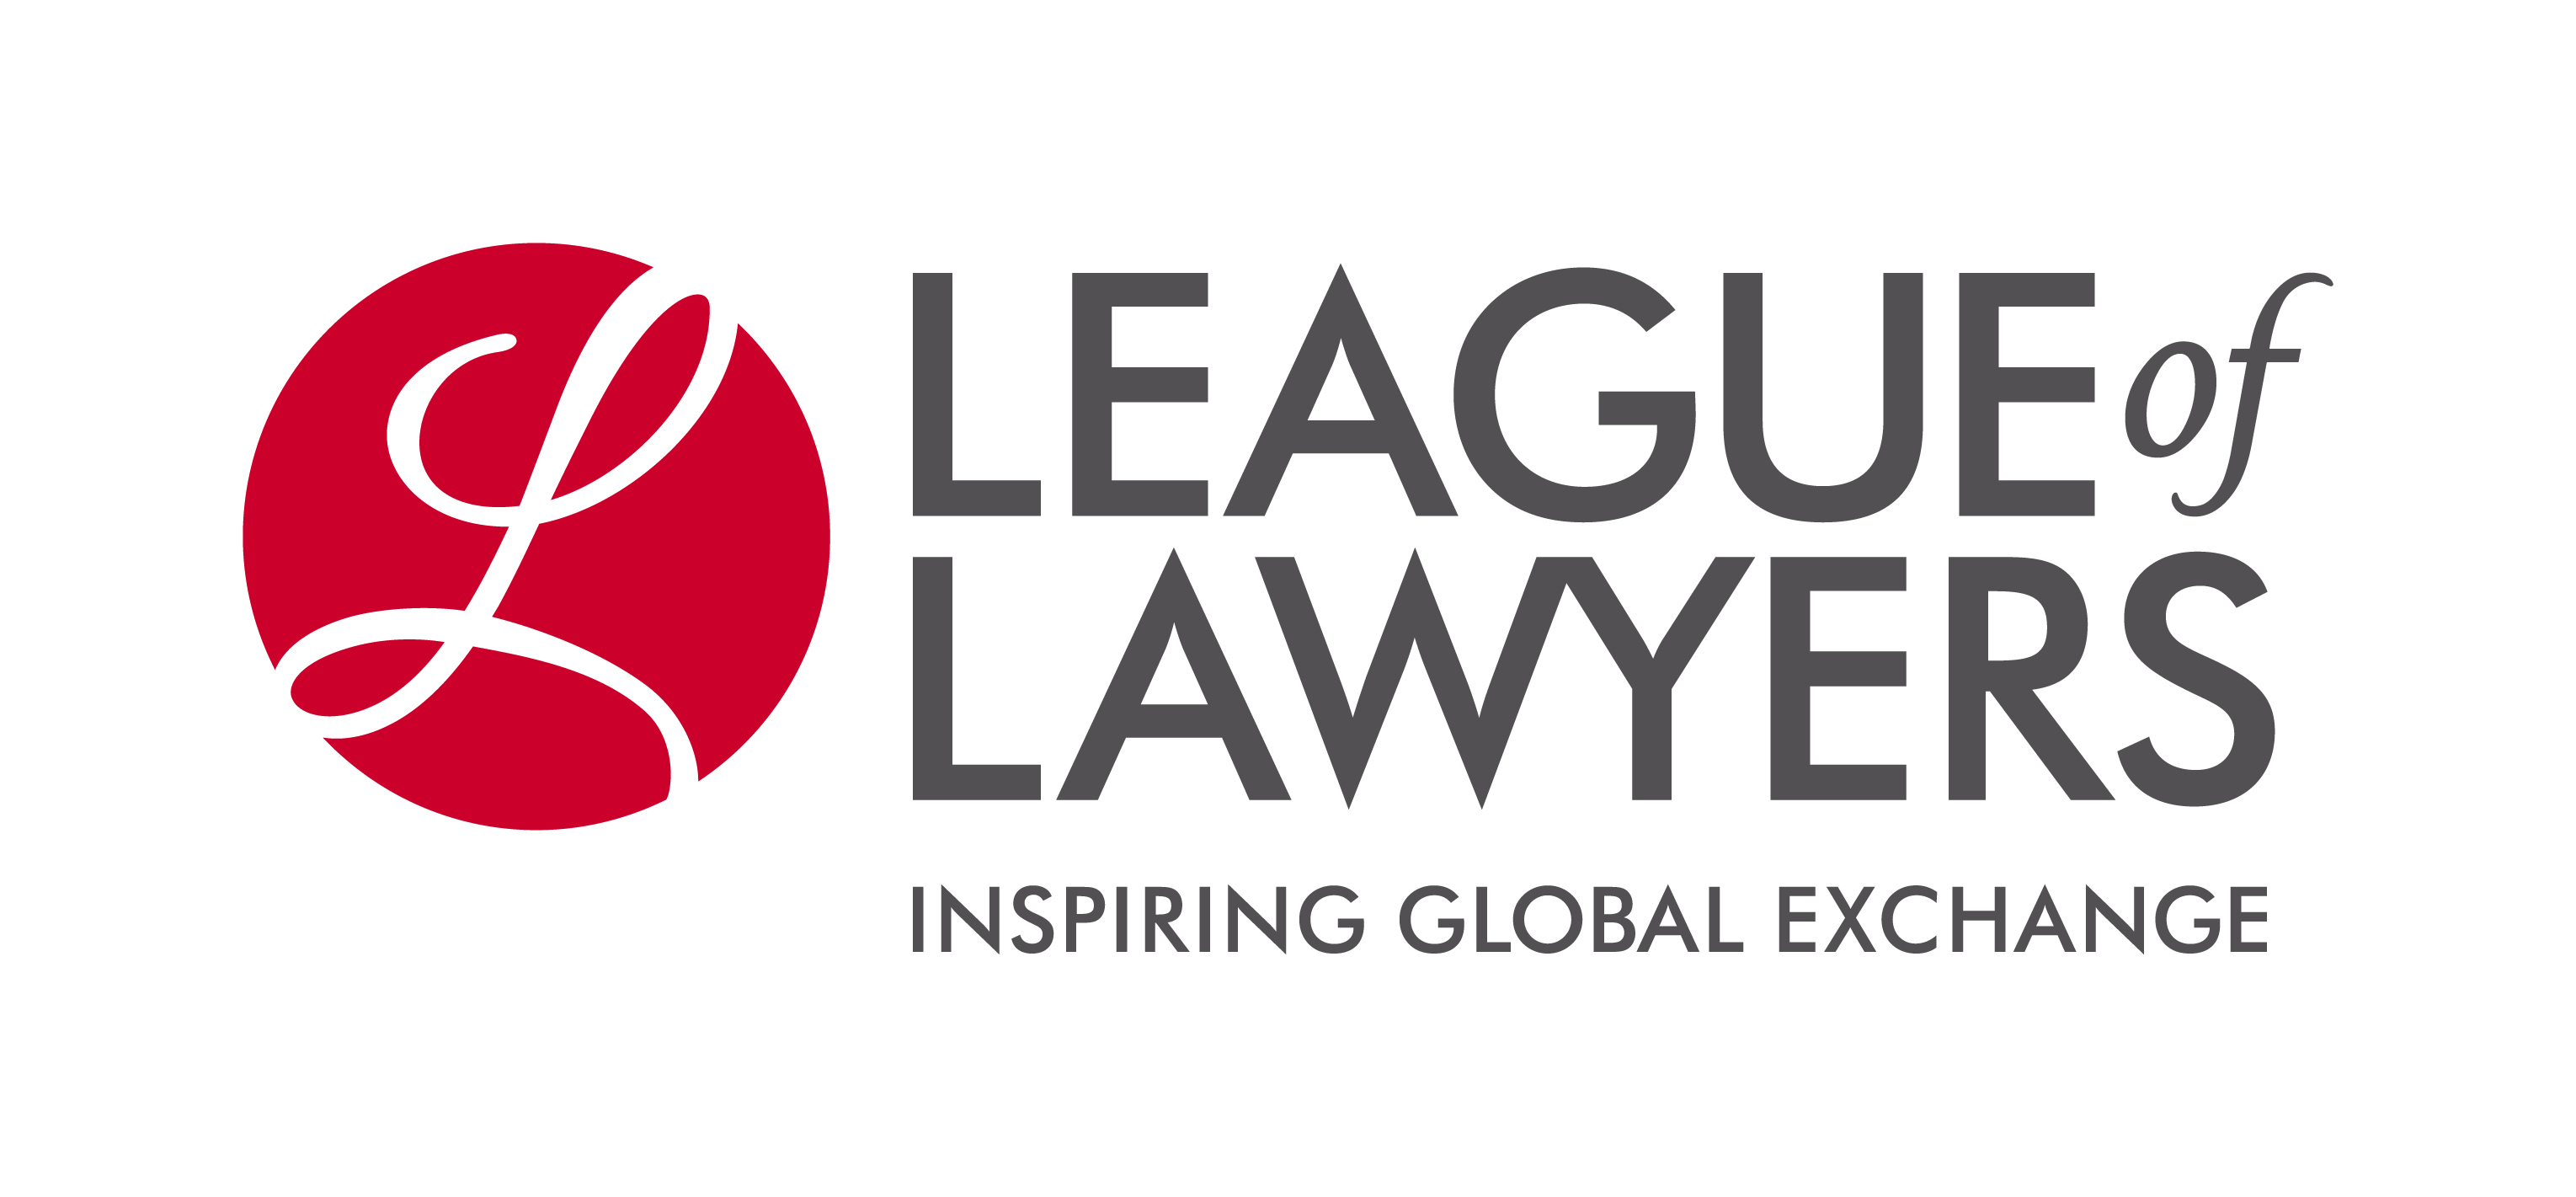 AMS Advocaten joins League of Lawyers